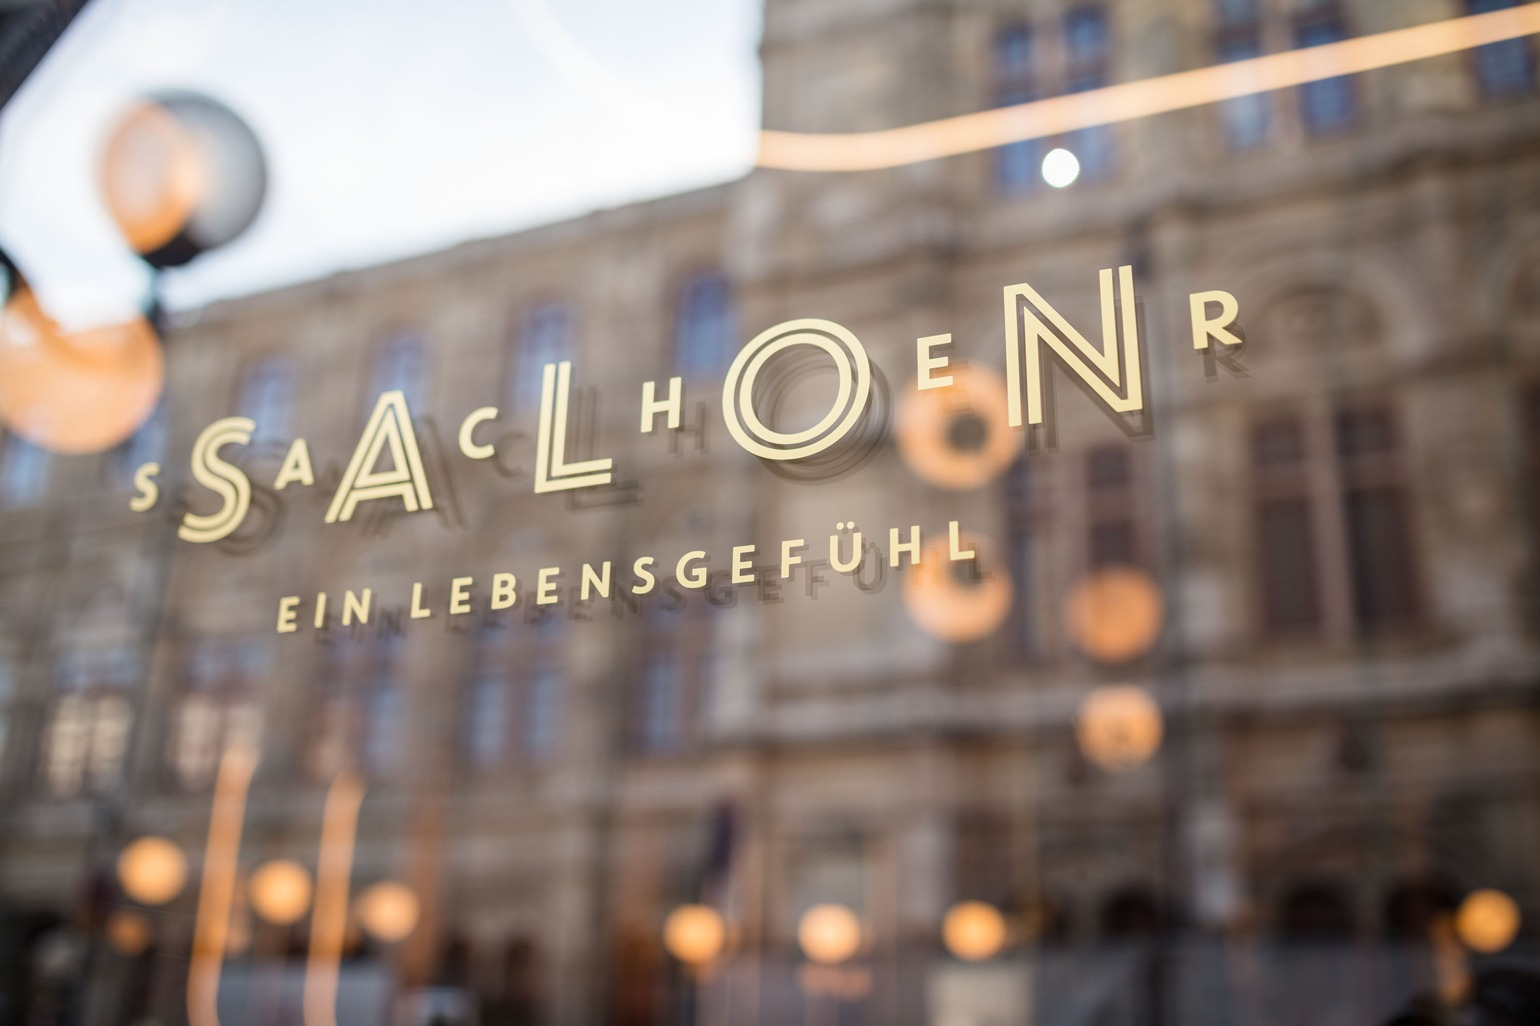 Salon Sacher Corporate Design Fassade